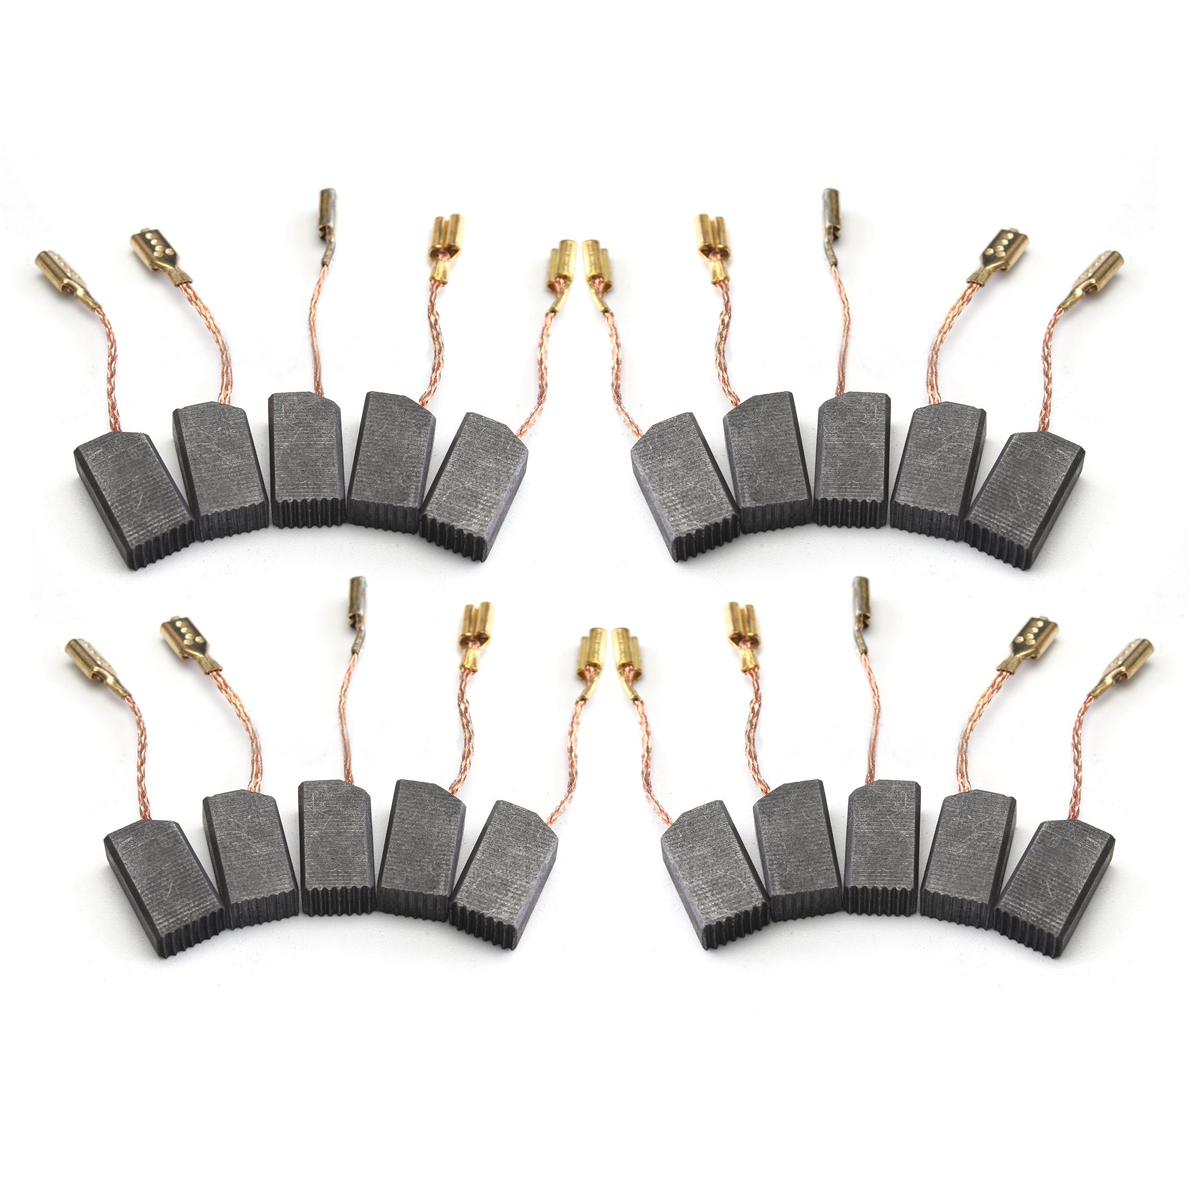 OSSIEAO 20pcs 6*8*14mm Graphite Copper Motor Carbon Brushes Set 20pcs 5x10x19mm electric motor graphite carbon brushes springs